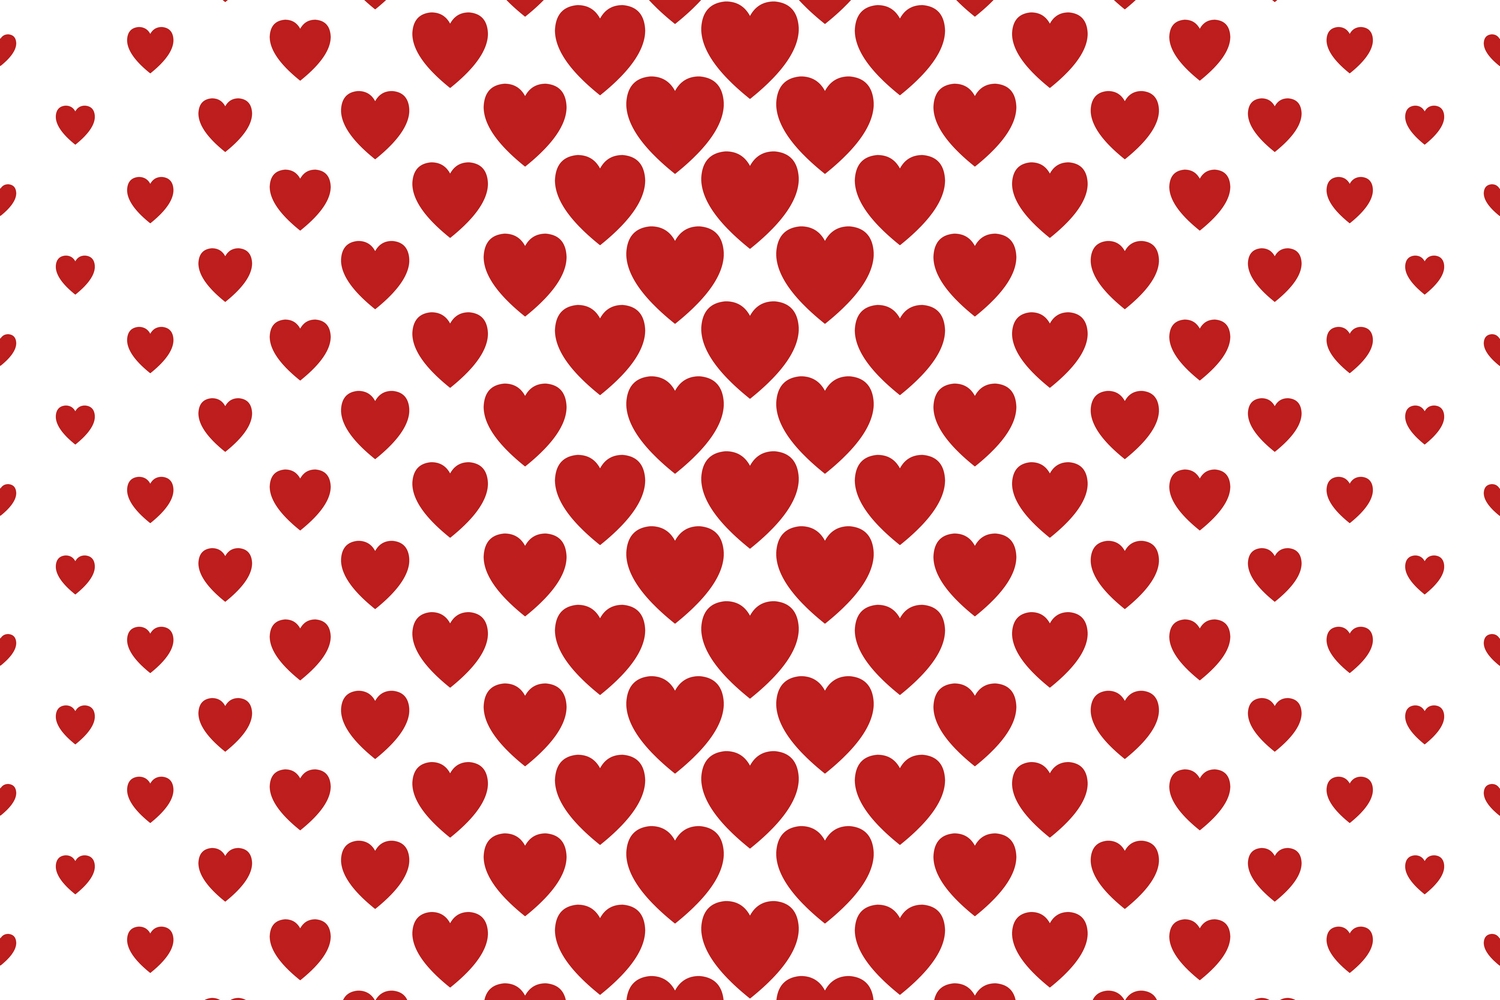 15 heart patterns (EPS, AI, SVG, JPG 5000x5000) example image 2